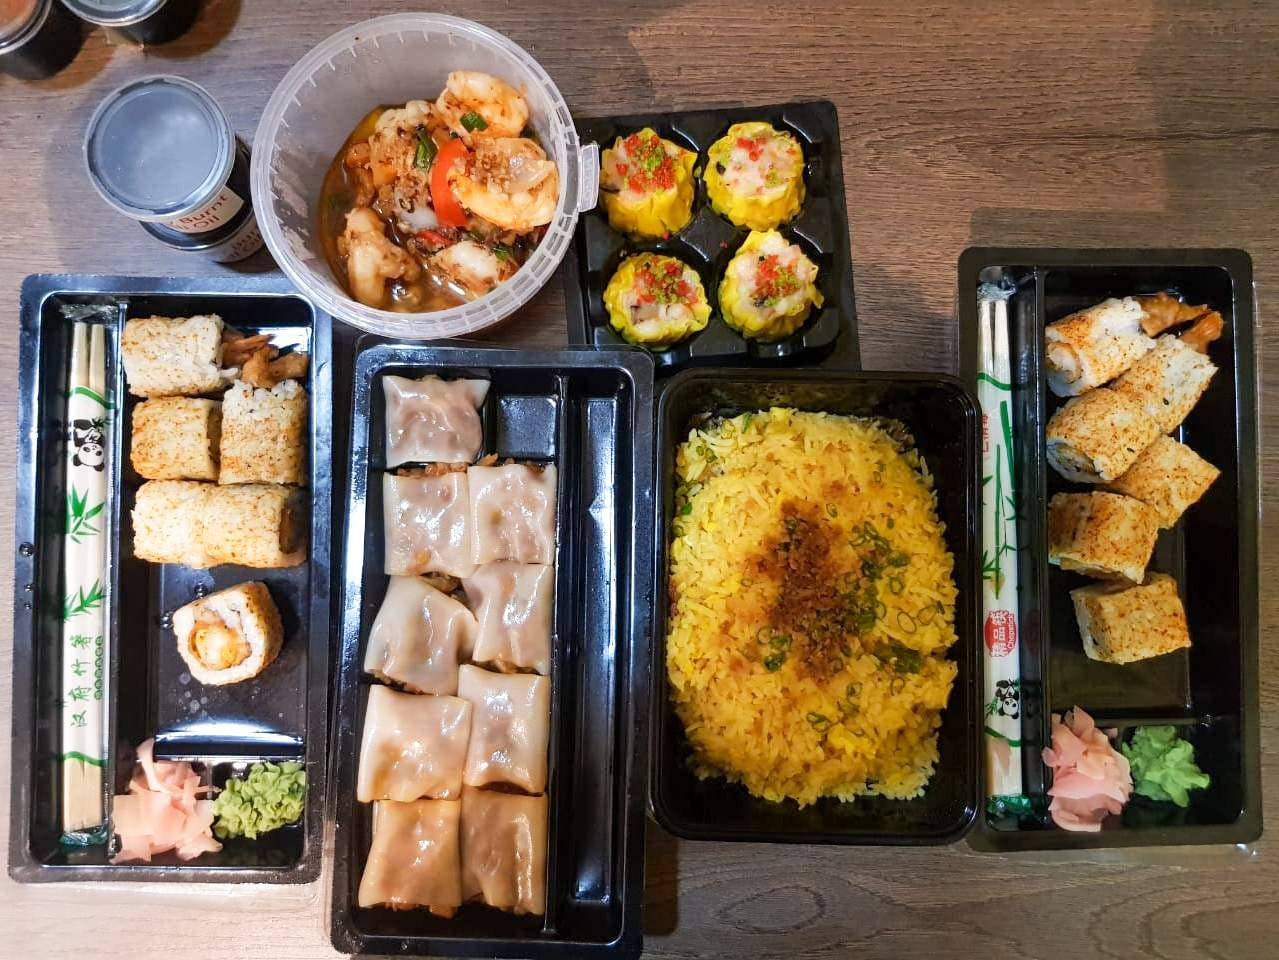 Dish,Cuisine,Meal,Food,Lunch,Osechi,Ingredient,Comfort food,Prepackaged meal,Bento